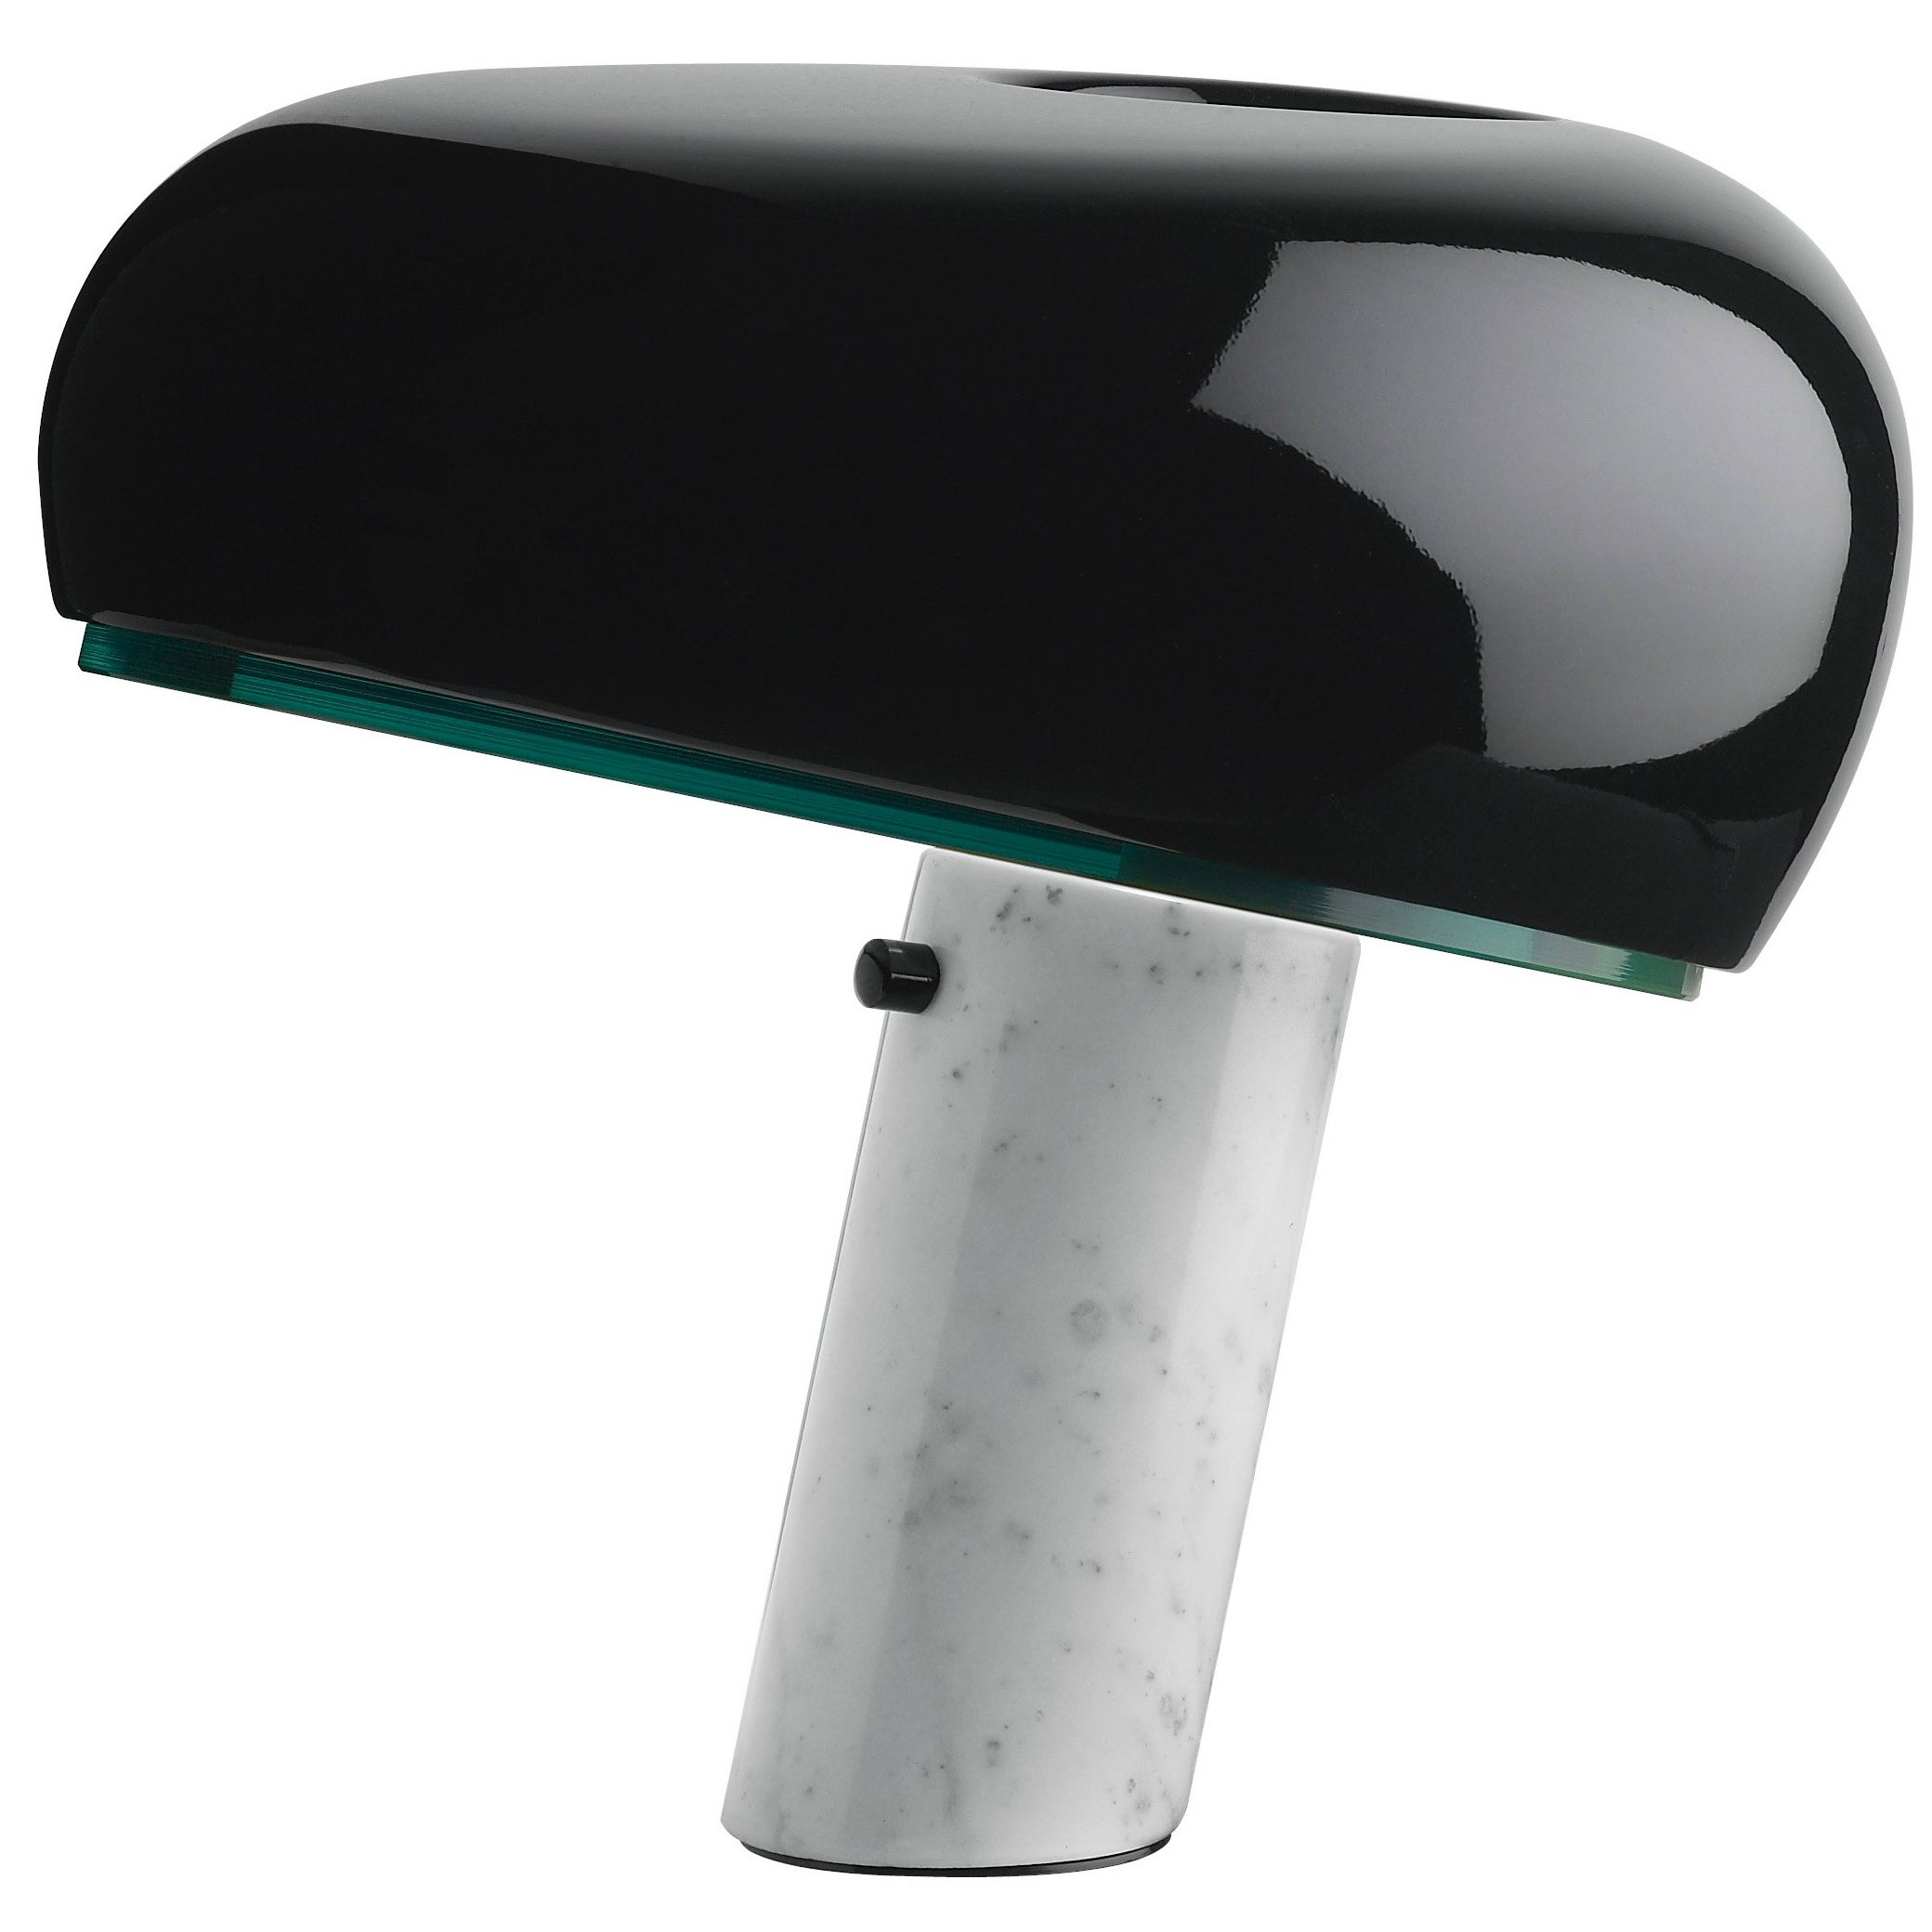 FLOS Snoopy Table Lamp in Black by Achille & Pier Giacomo Castiglioni